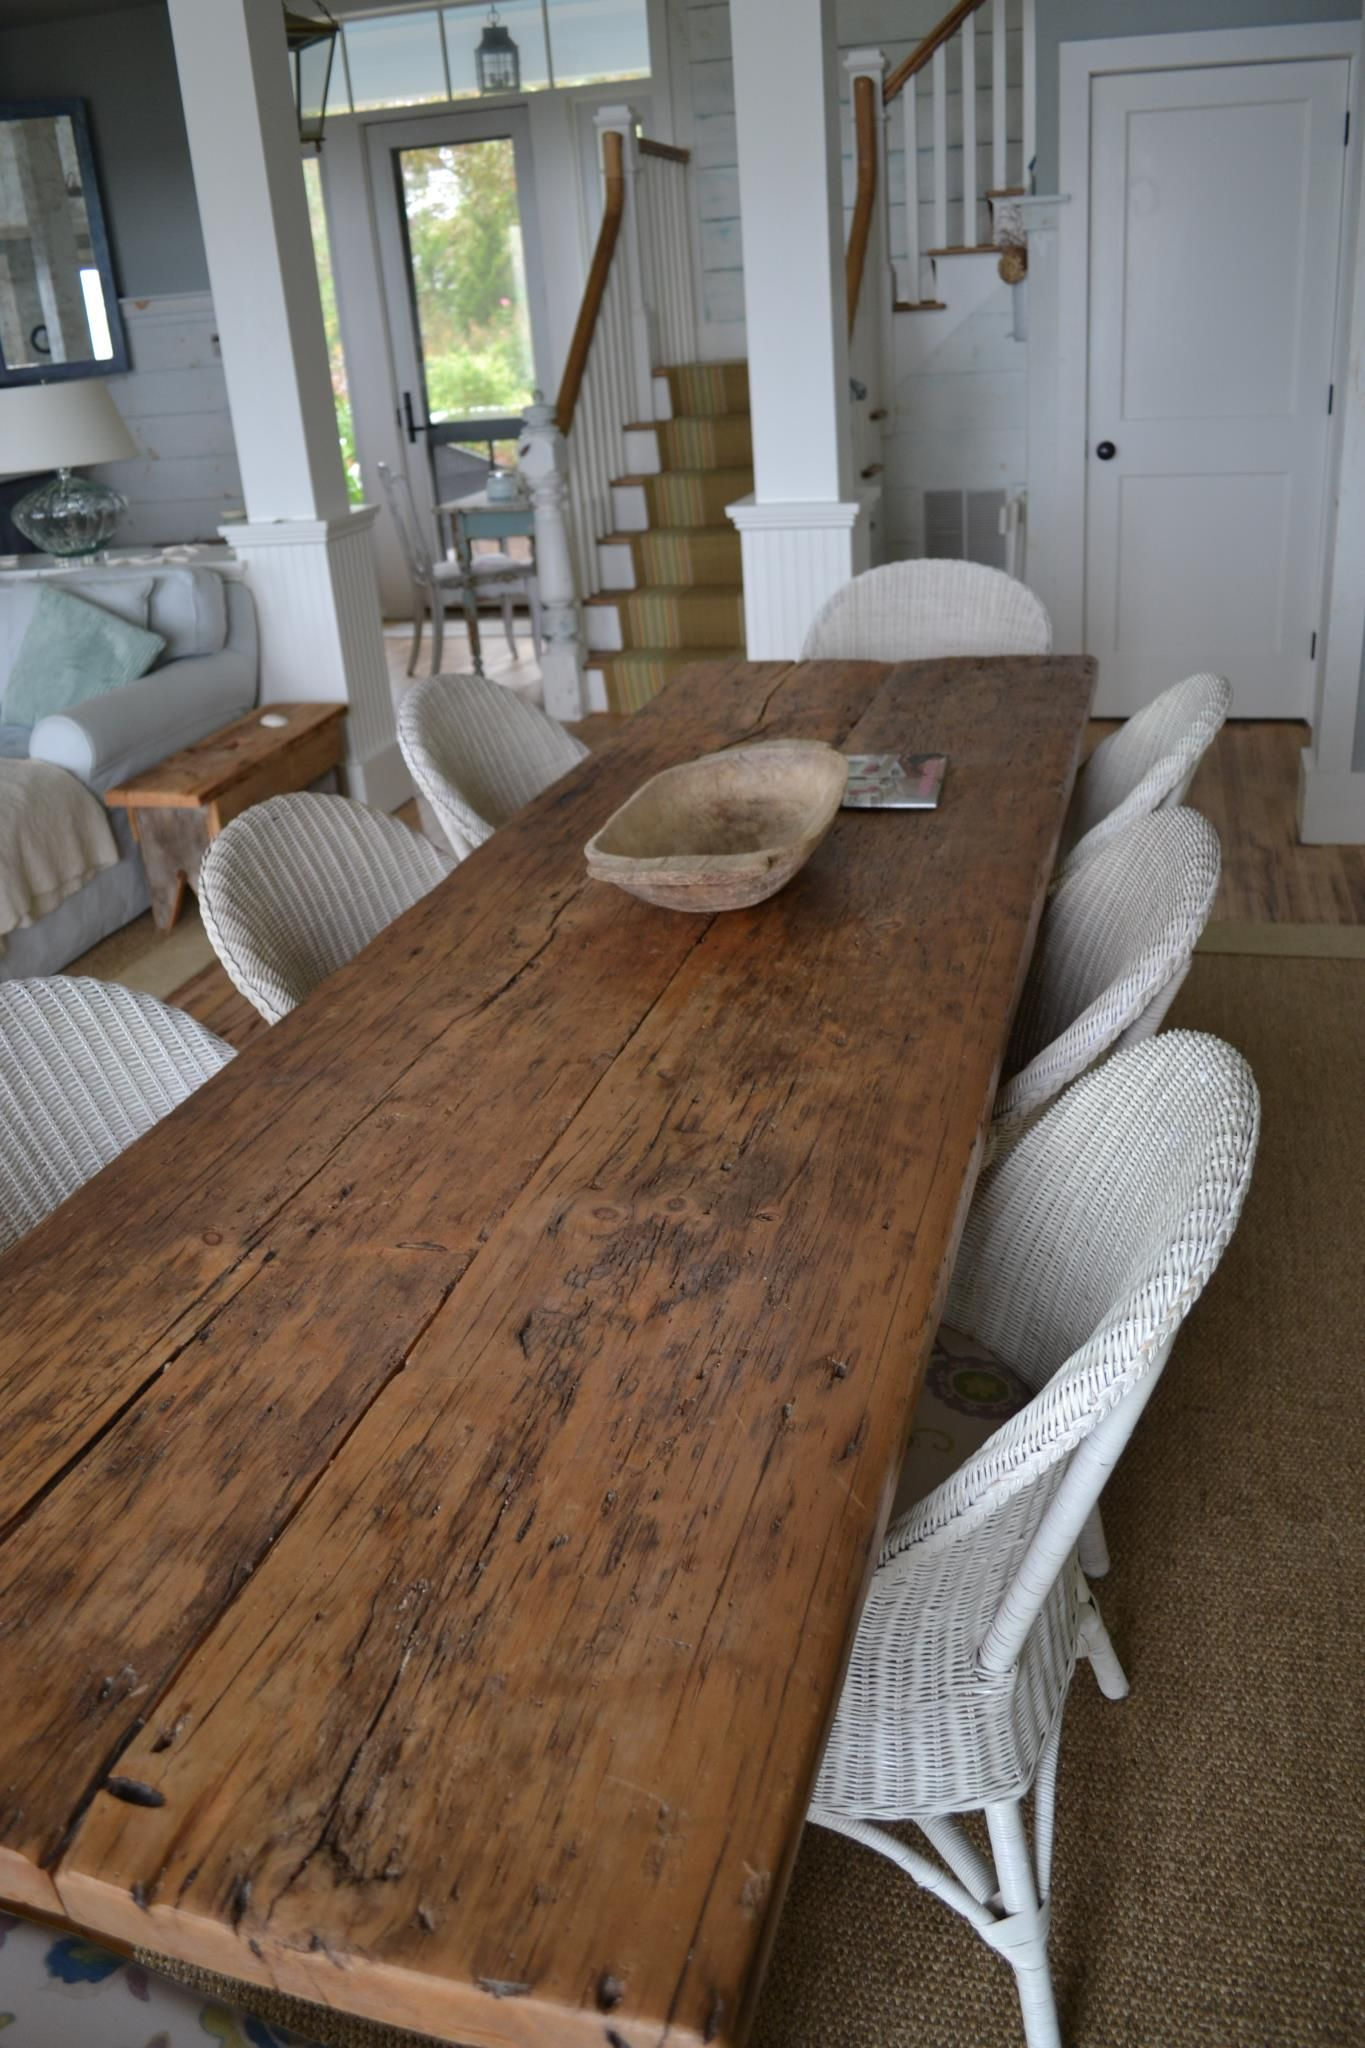 Rustic farm dining tables - Http Media Cache Ec4 Pinimg Com Originals E4 2f 4d E42f4dd9dd7d3c17d4adee4f268e950e Jpg Kitchen Dining Pinterest Wide Plank Farming And Tables